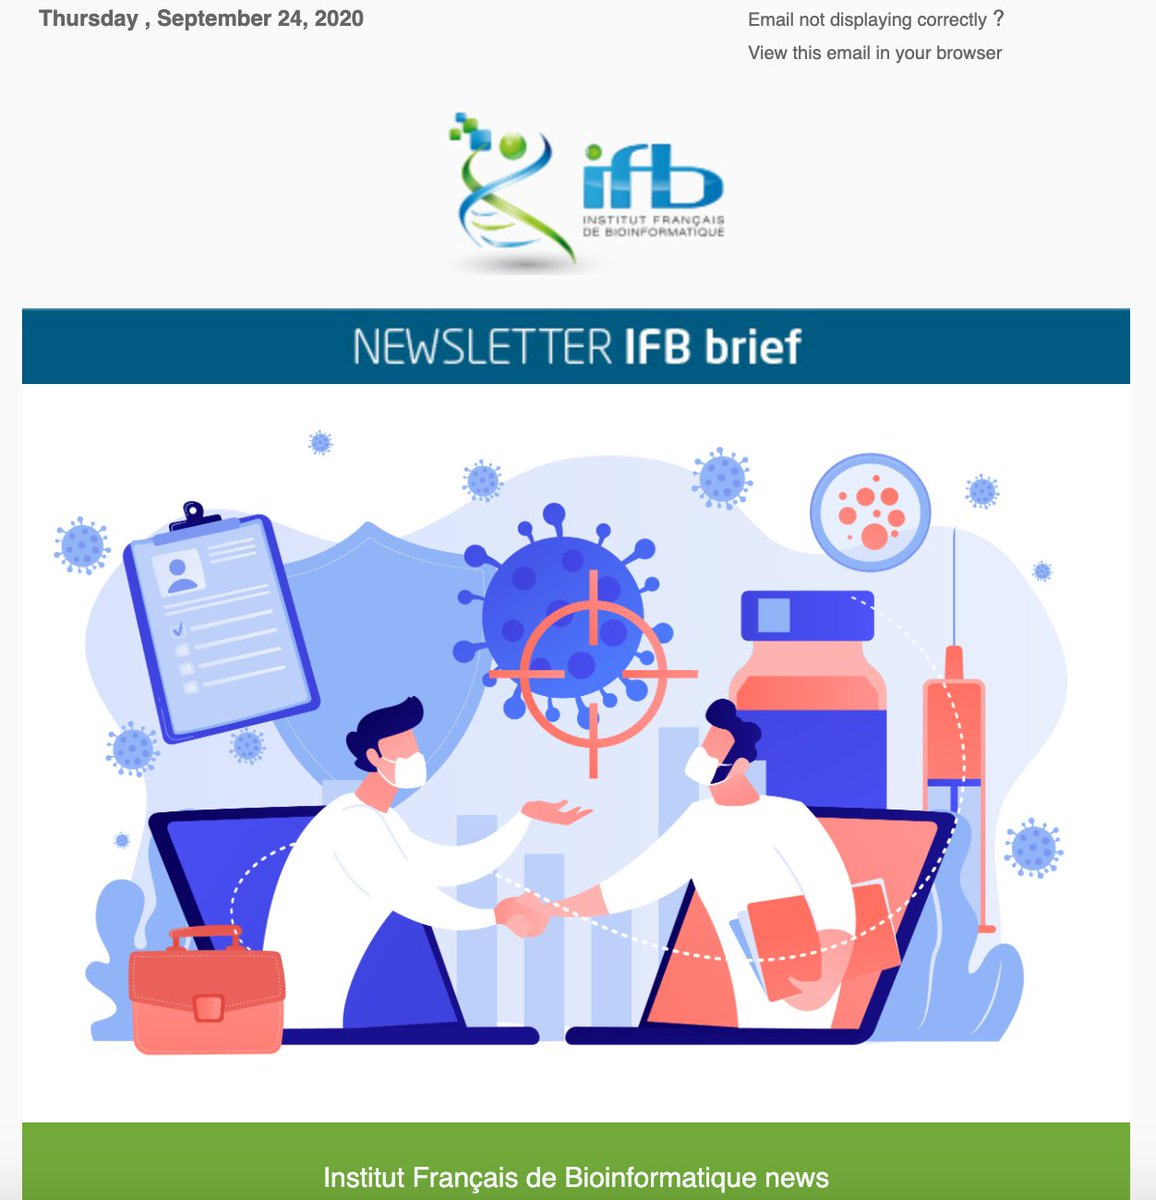 The third edition of the @IFB_Bioinfo newsletter is out : https://t.co/zTNYiF0mNv IFB Covid-19 Task Force, quick tour of the French @galaxyproject instance, and much more... Enjoy reading ! https://t.co/Sdw2b1pIFE